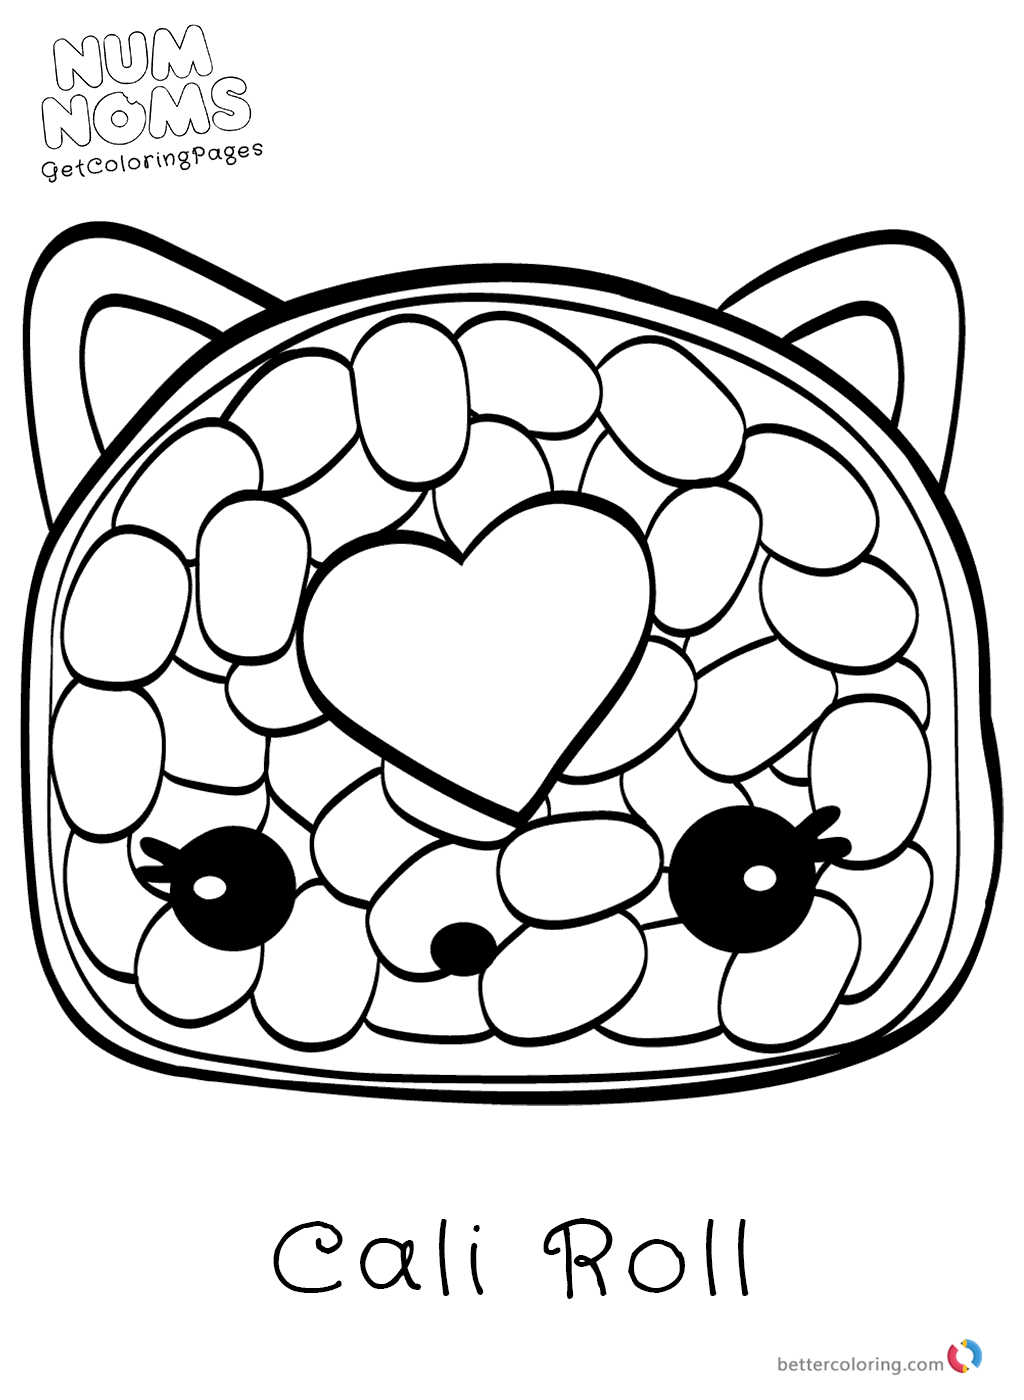 Num noms coloring pages free printable coloring pages for Num noms coloring pages free